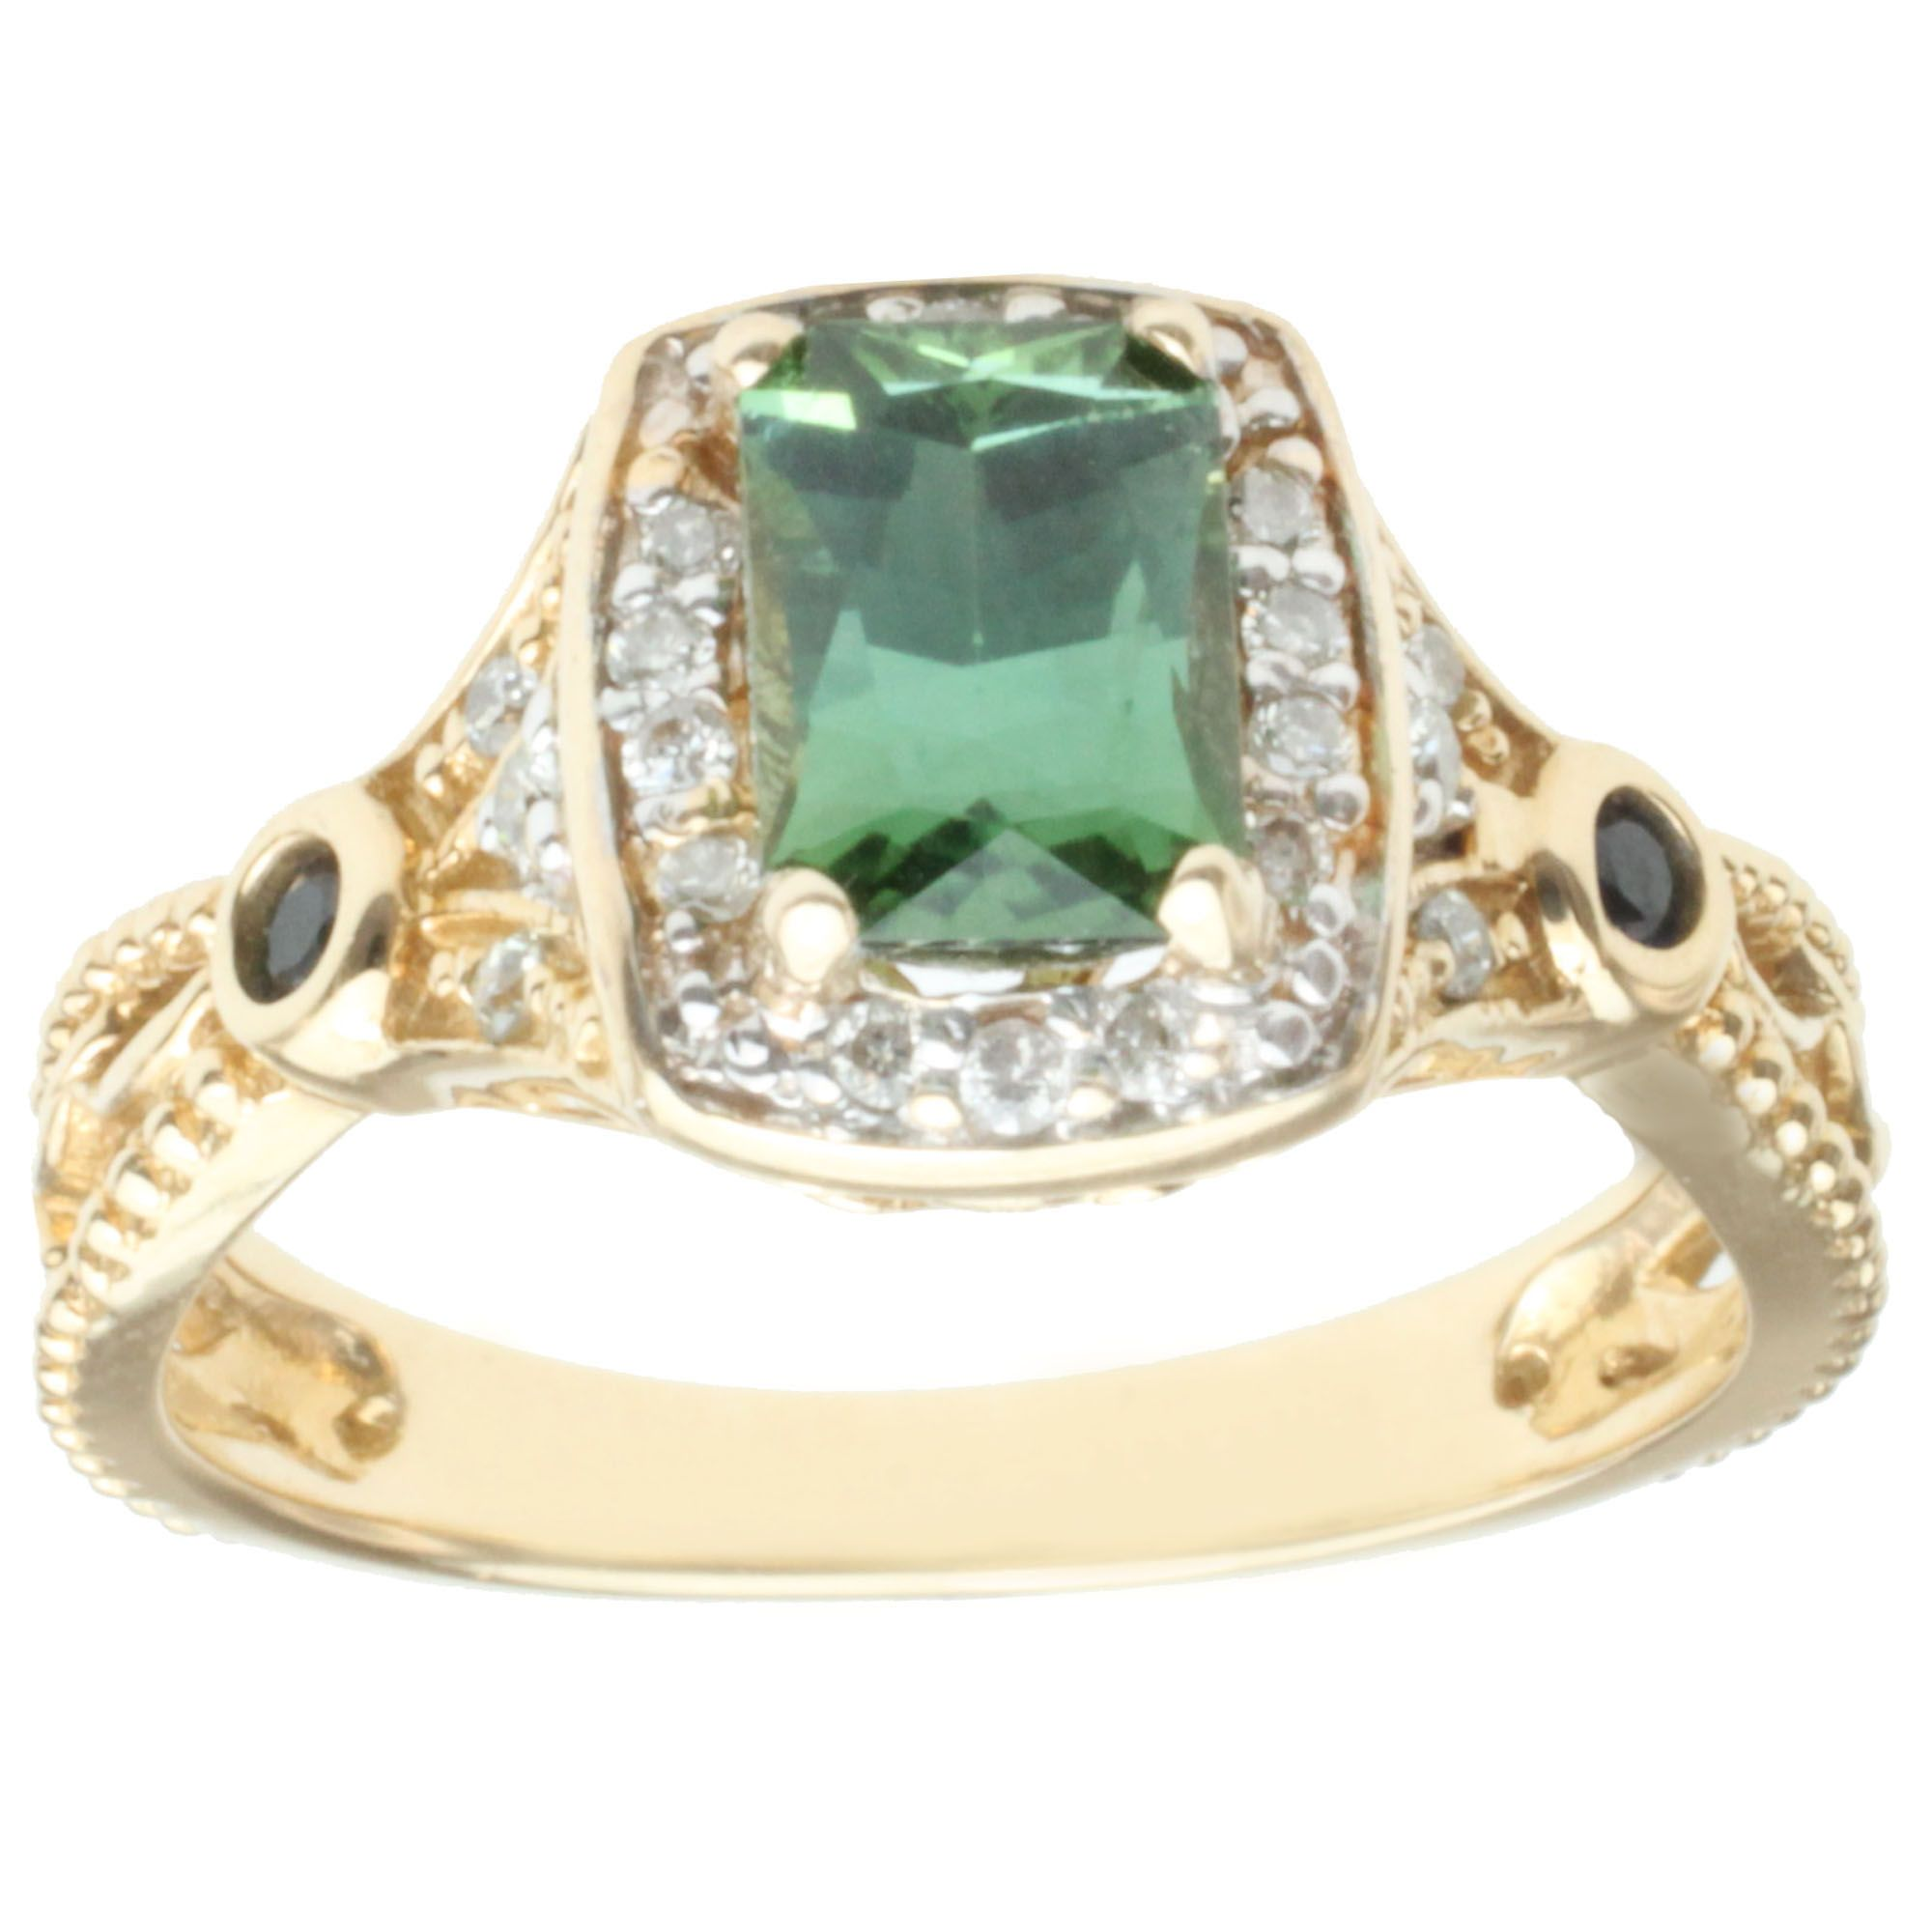 rose engagement green campari teal oval peacock il fullxfull gold eidelprecious by ring diamond rings listing sapphire